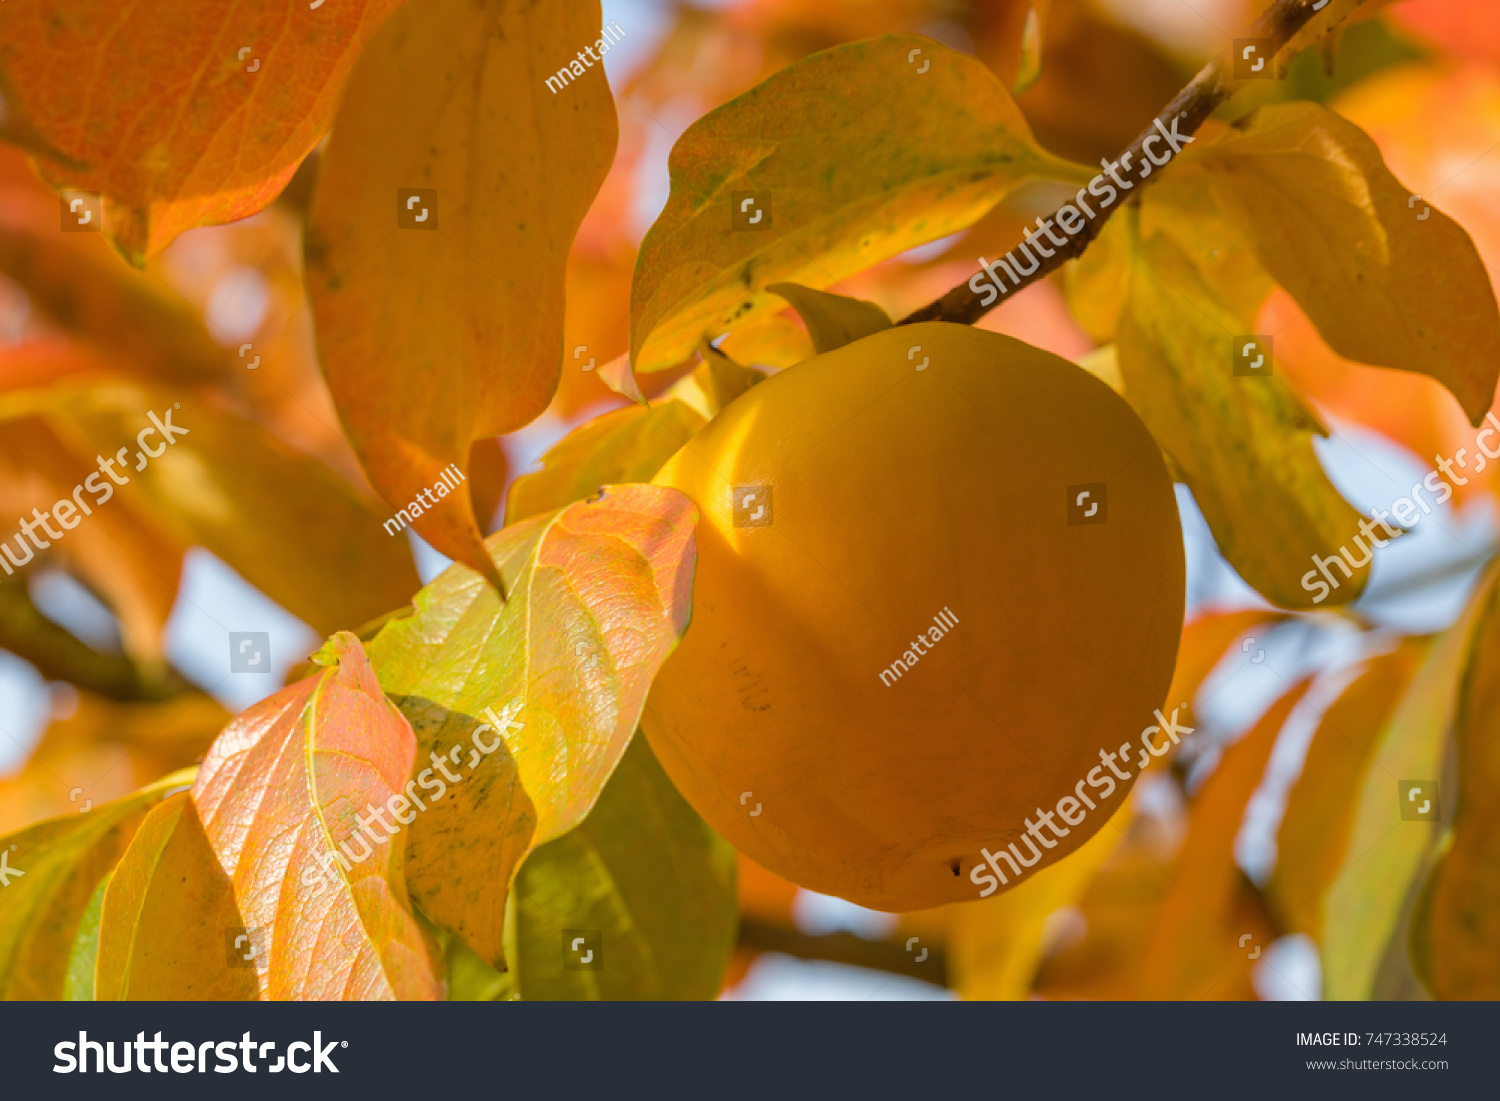 Persimmon Fruit On Tree Close Up Stock Photo (Royalty Free ...